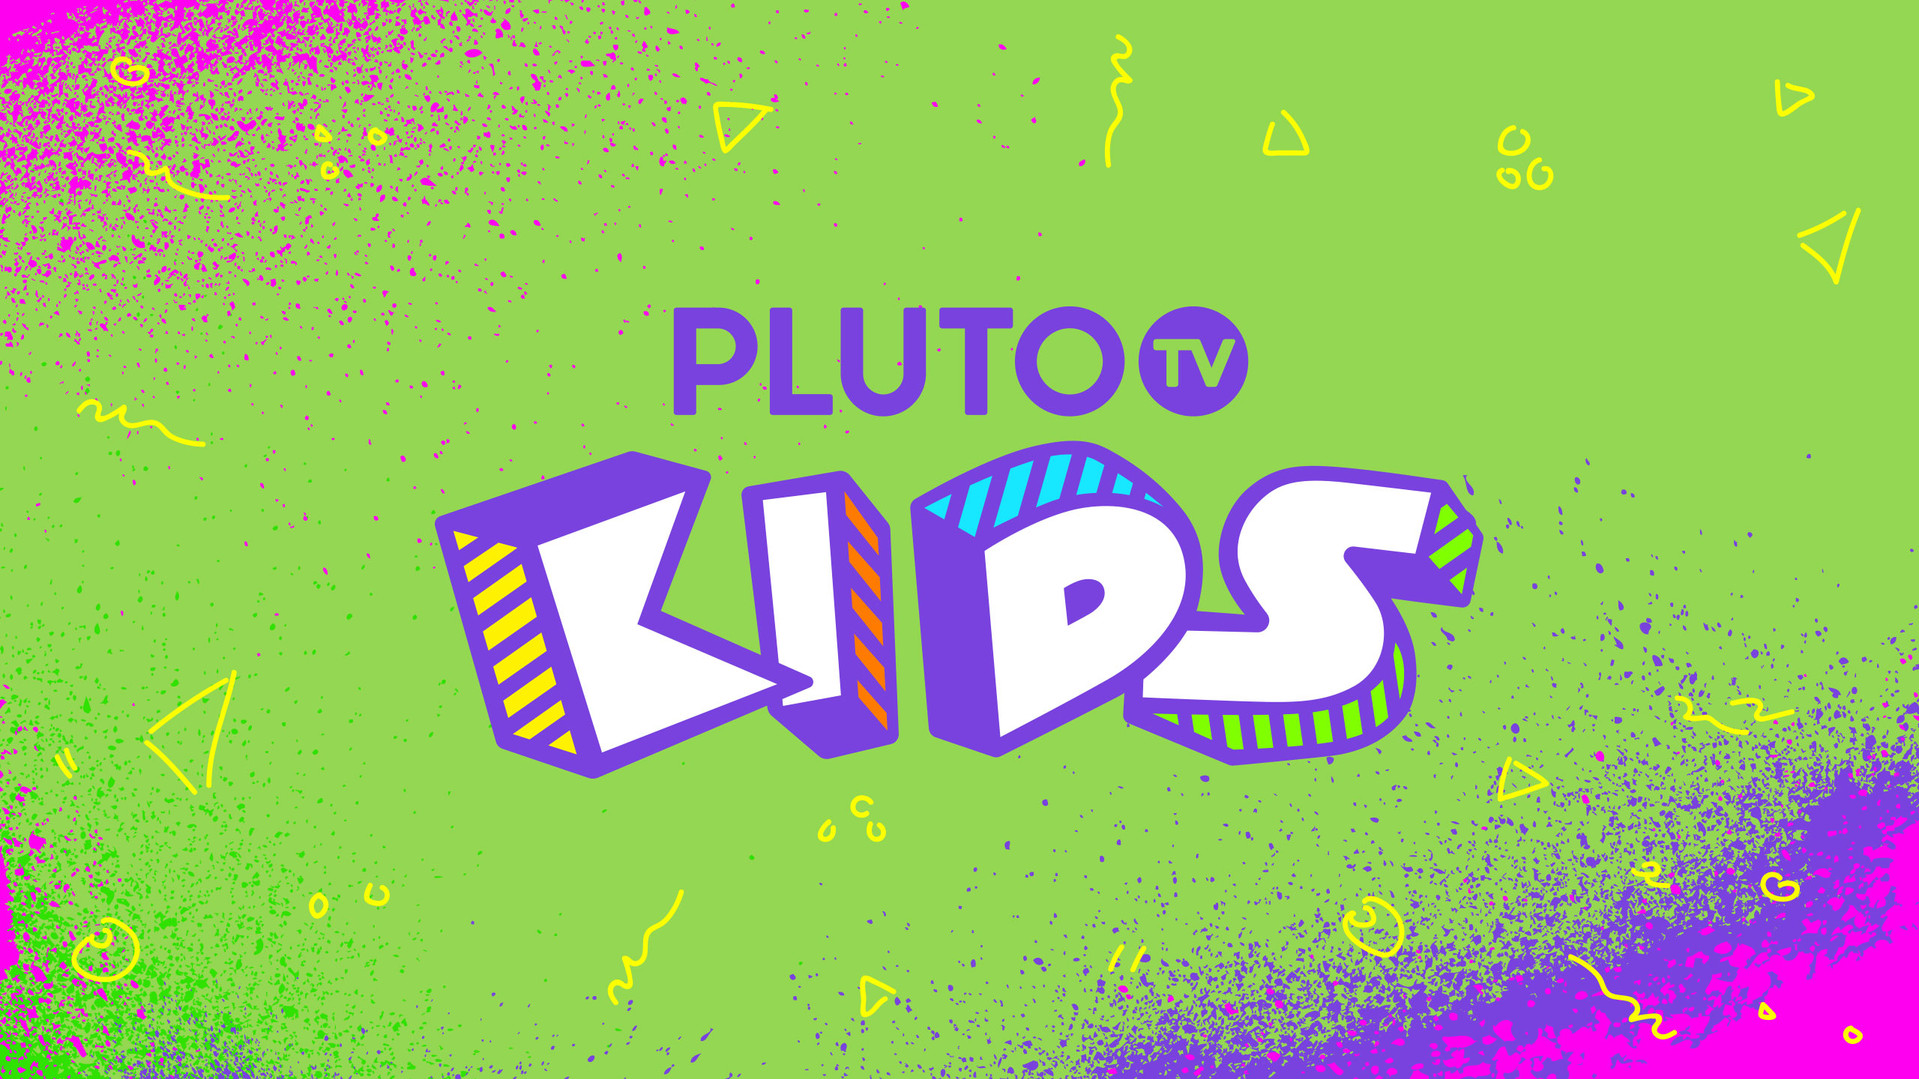 pluto tv kids featuredImage.jpg